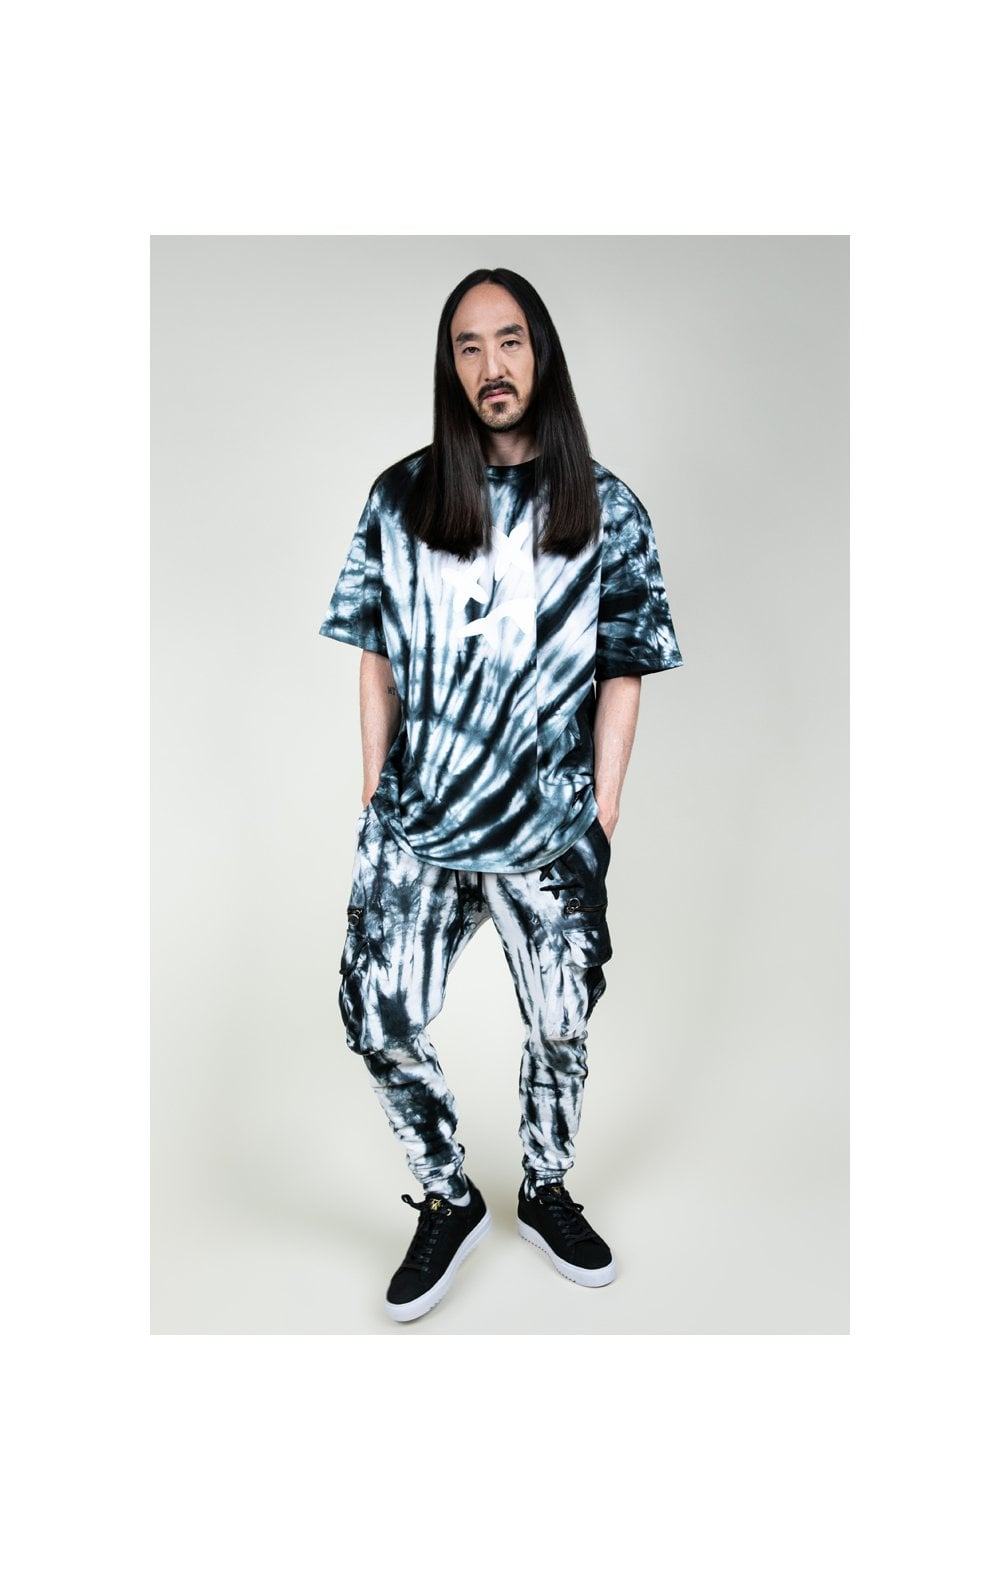 Load image into Gallery viewer, SikSilk X Steve Aoki S/S Oversize Essential Tee – Black & White Tie Dye (2)